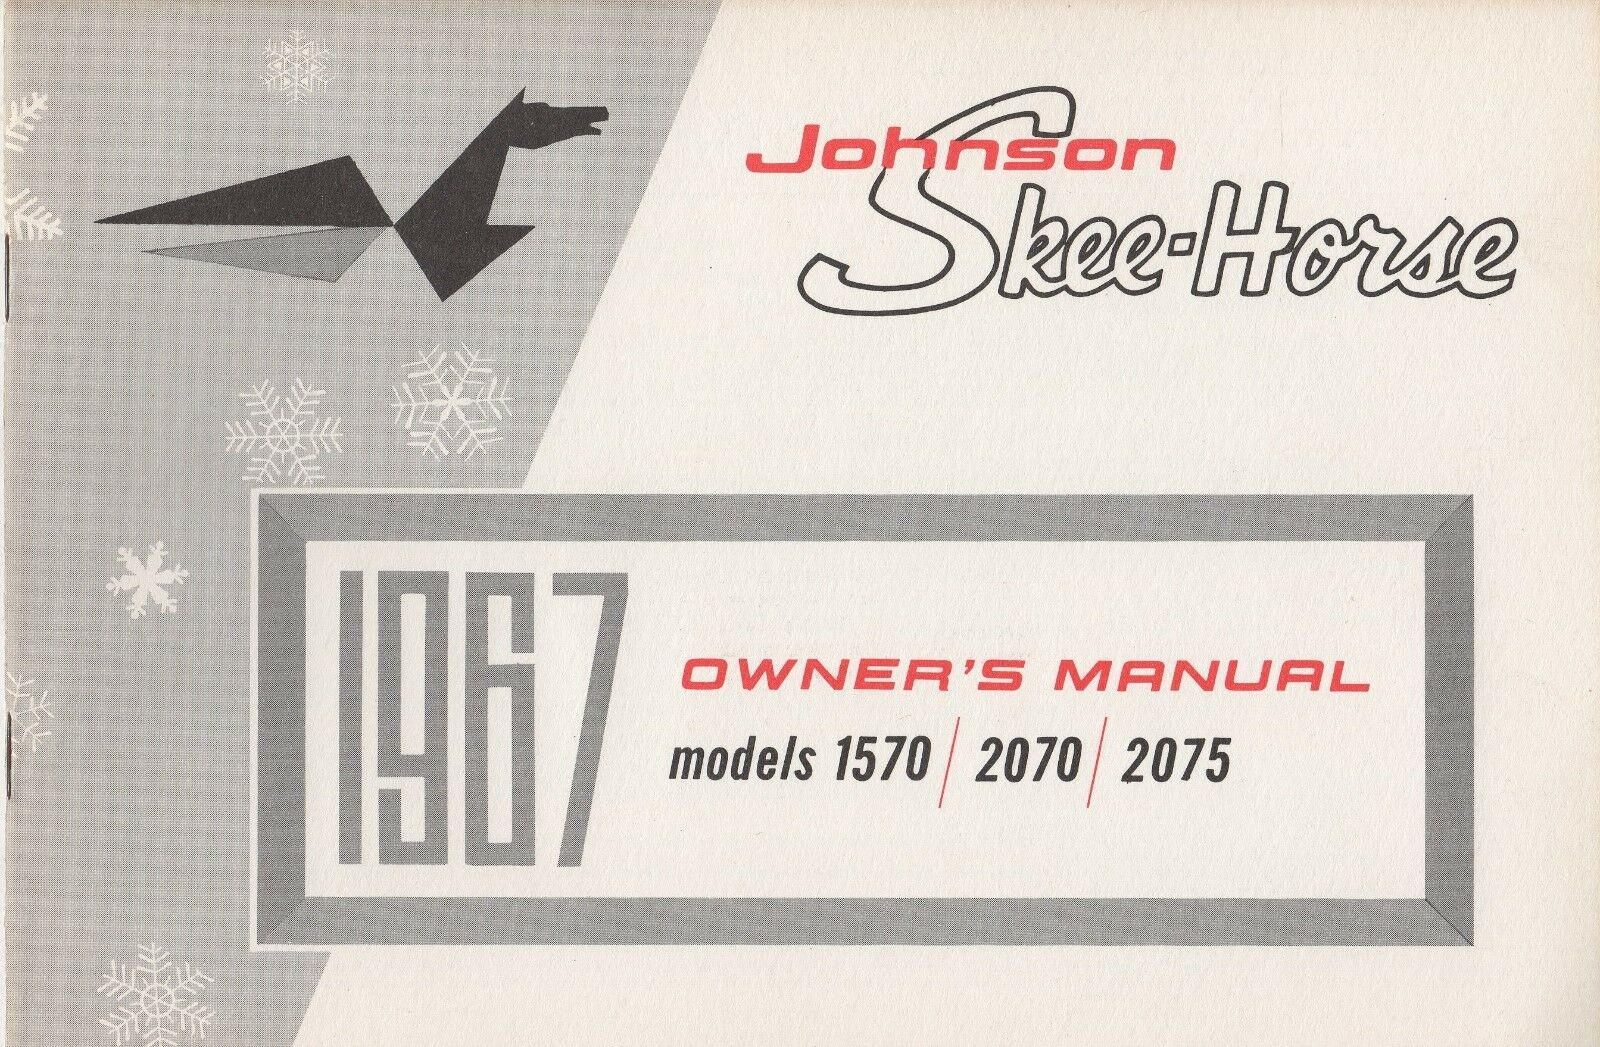 1967  JOHNSON SKEE-HORSE MODELS 1570, 2070, 2075 OWNER'S MANUAL 112563 (460)  the newest